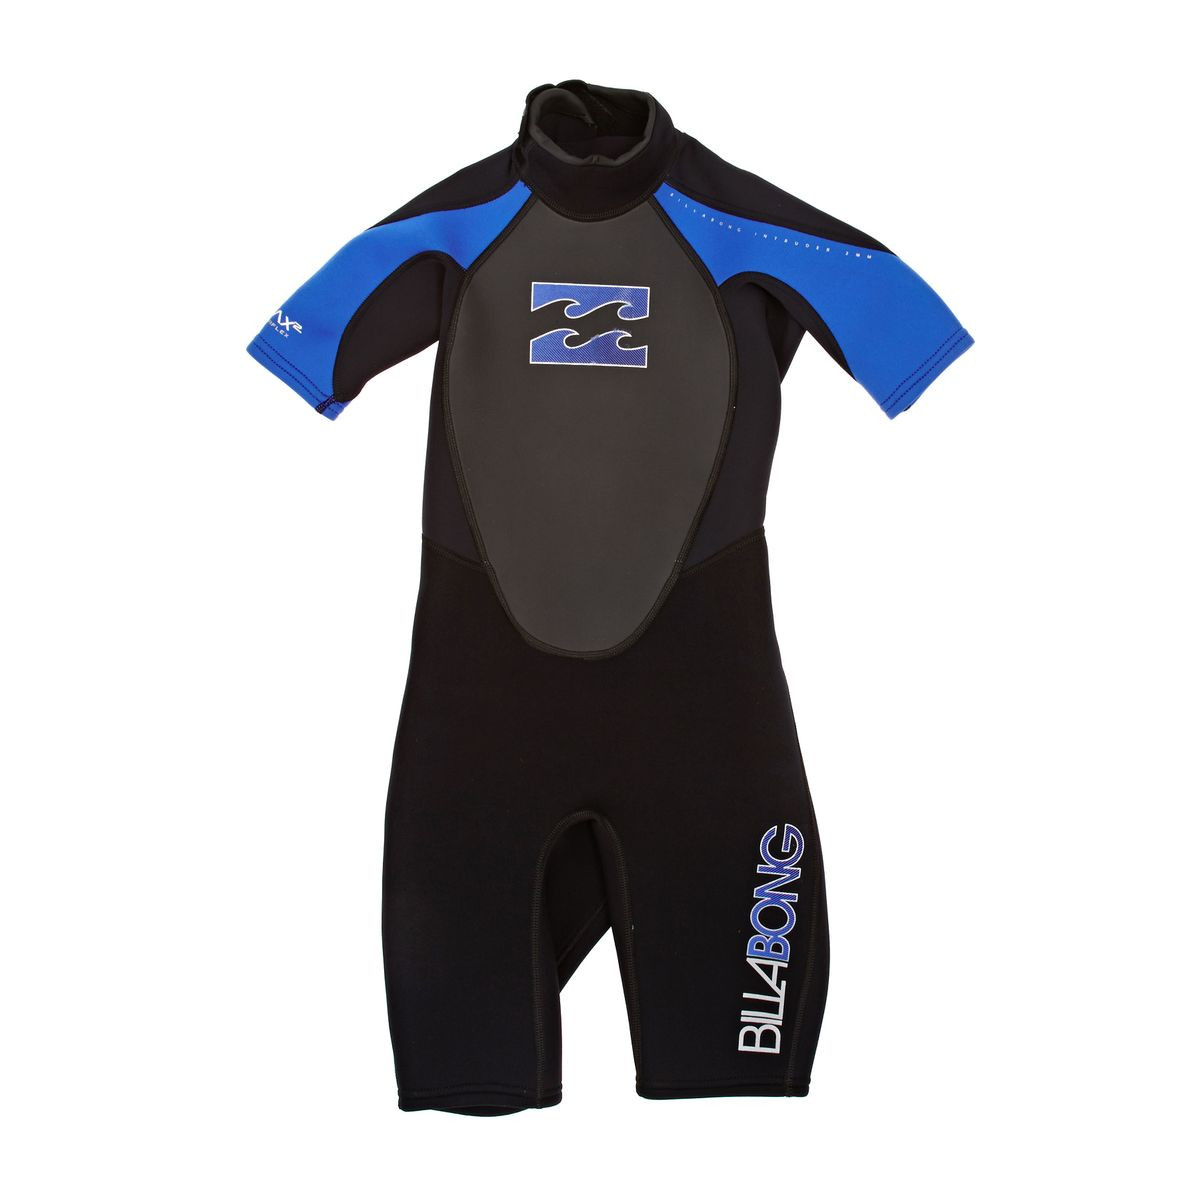 Billabong Boys Intruder 2mm Short Sleeve Wetsuit - Blue